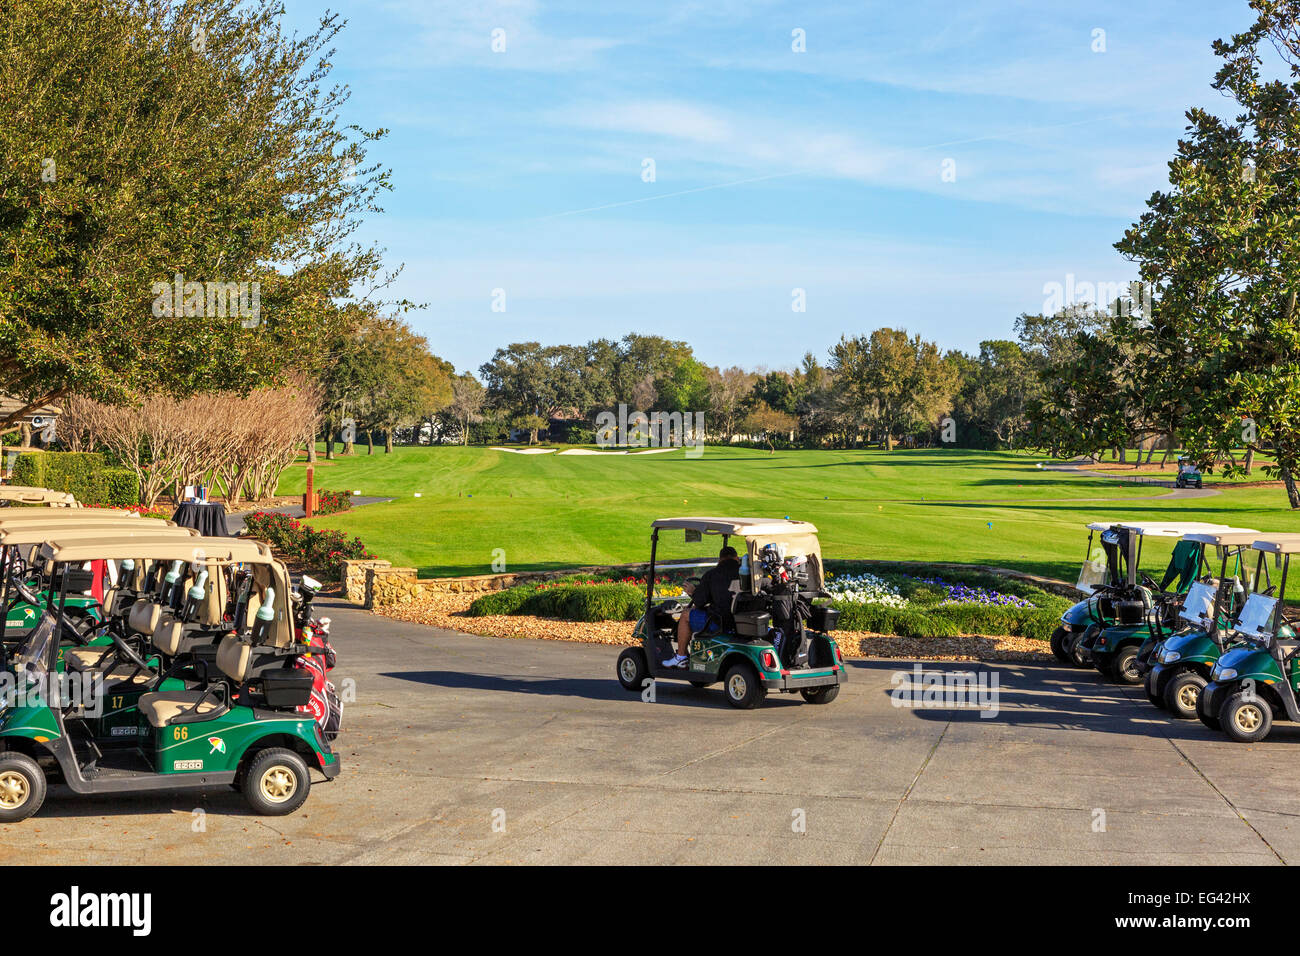 Parked golf buggies at the first tee of Arnold Palmer's Bay Hill Golf Club, Orlando Florida, America - Stock Image